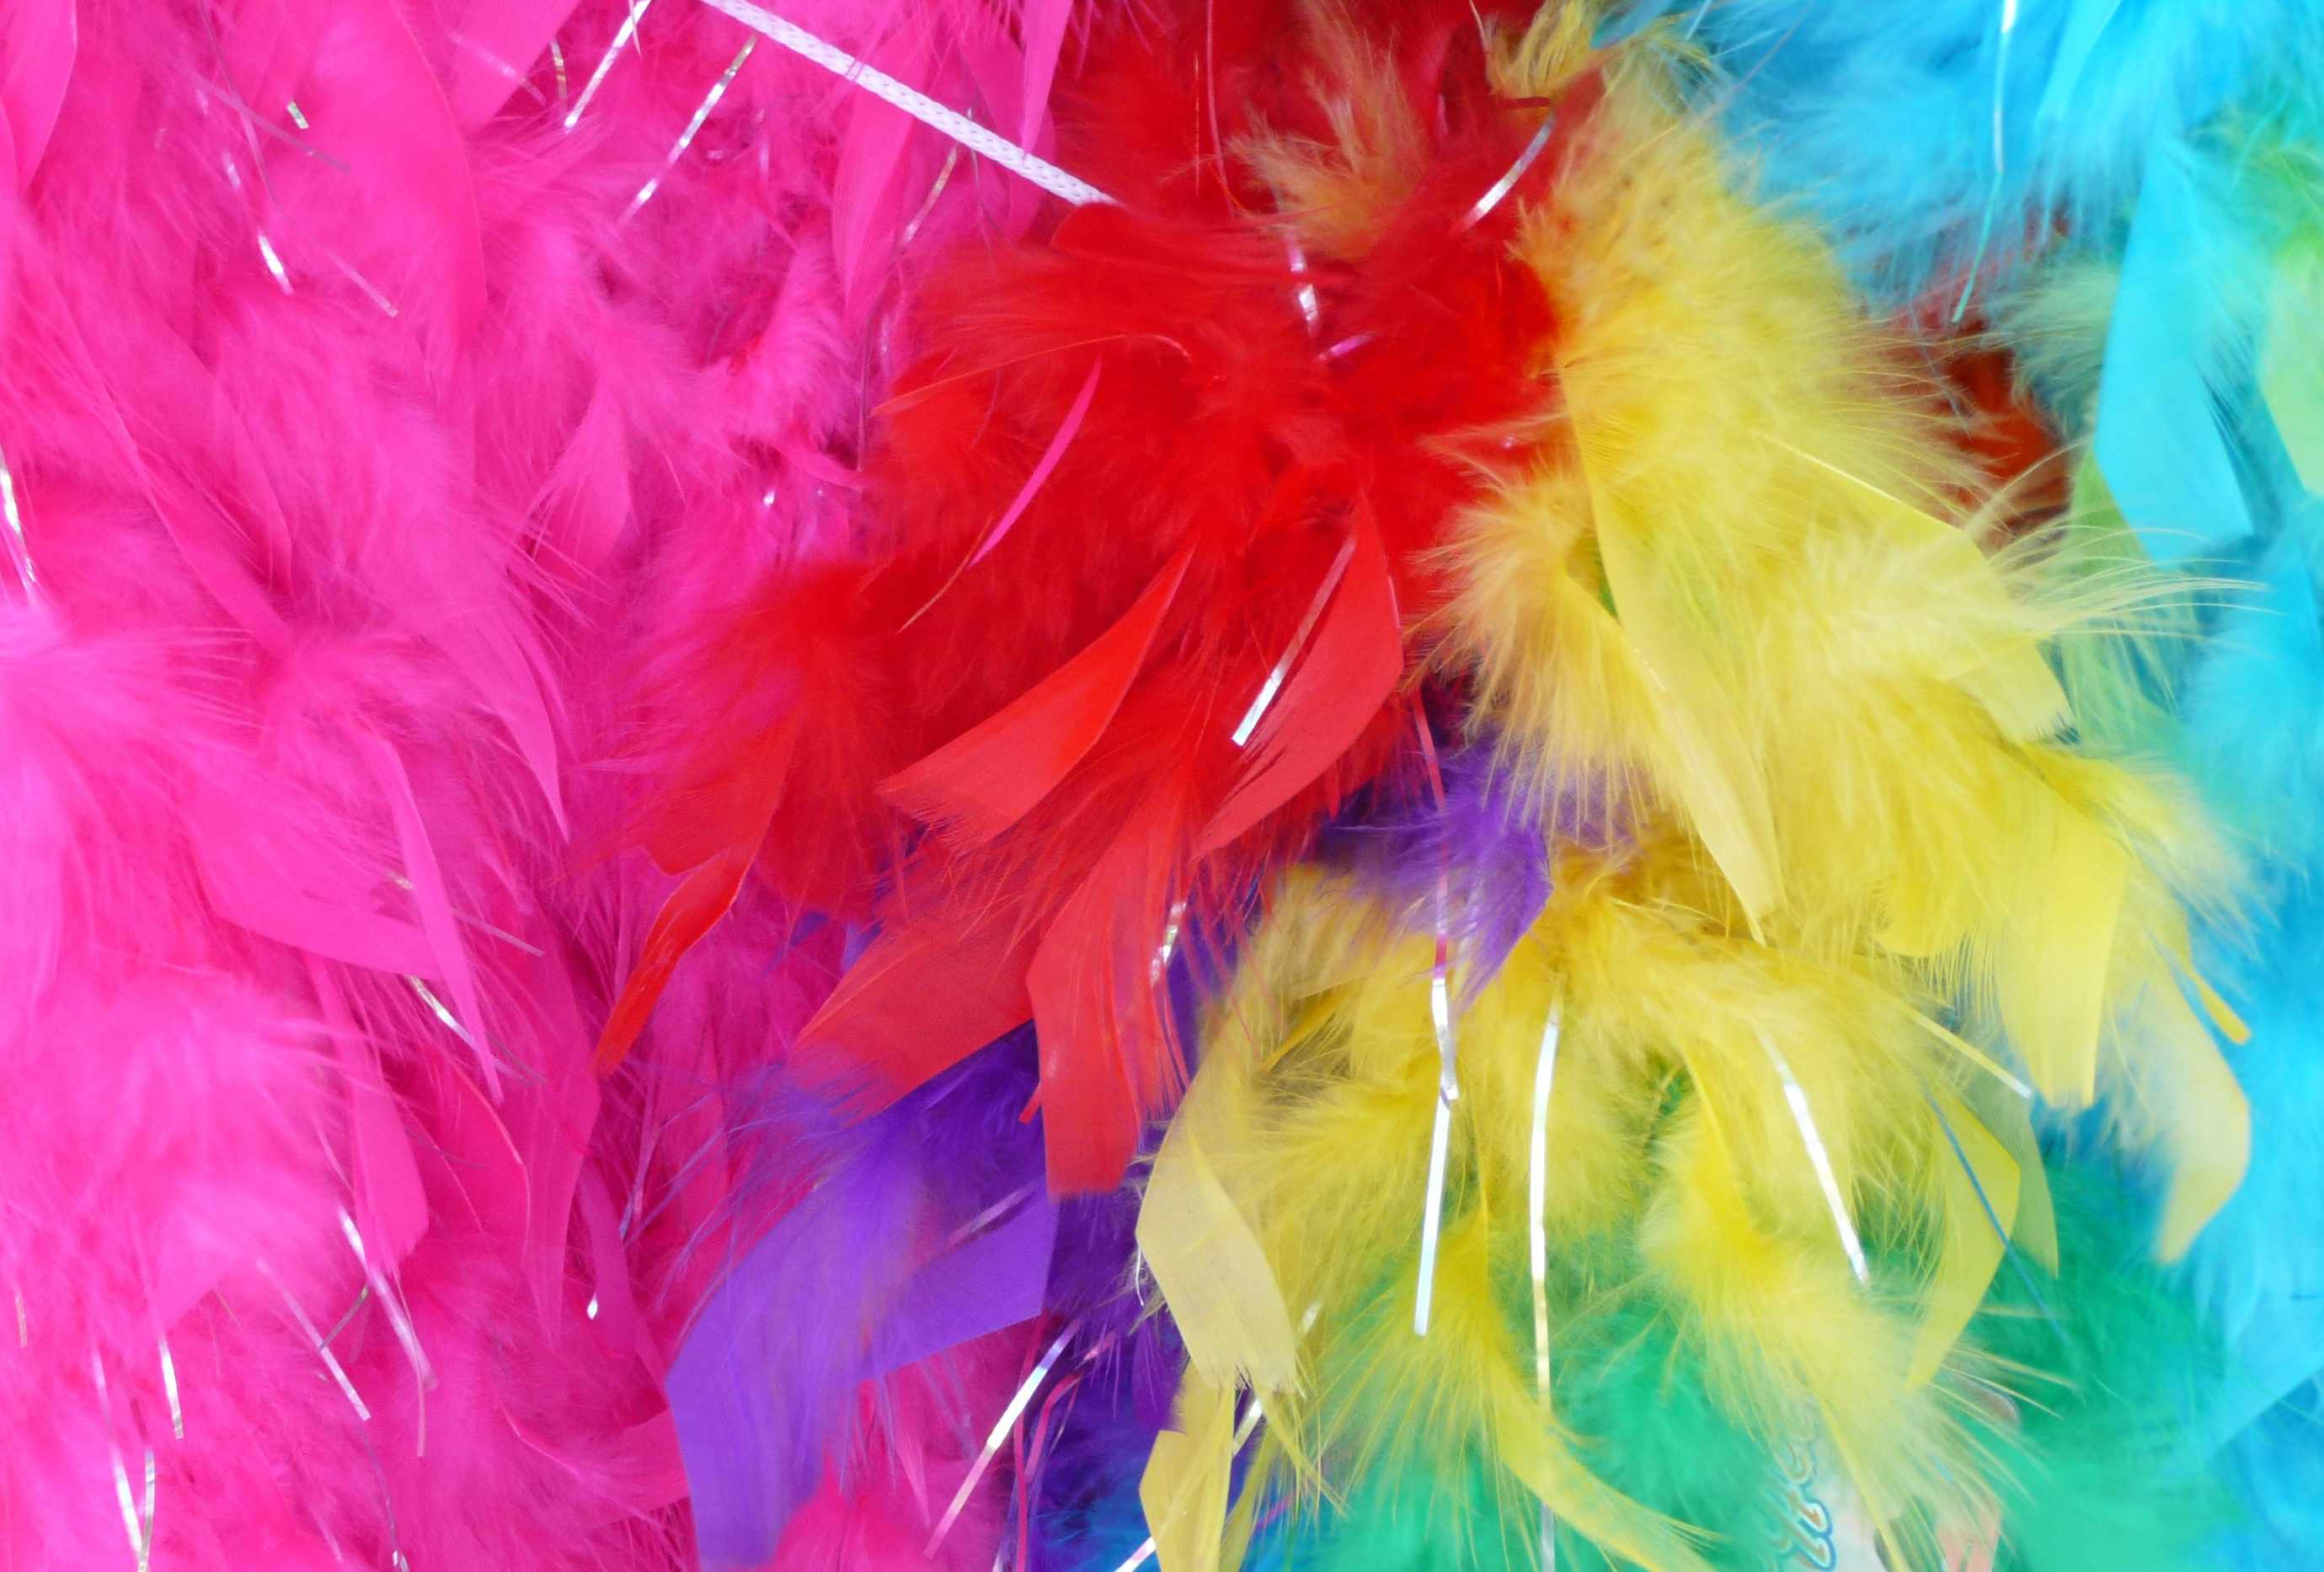 mum-spends-entire-wage-on-daughters-dance-costumes_27794